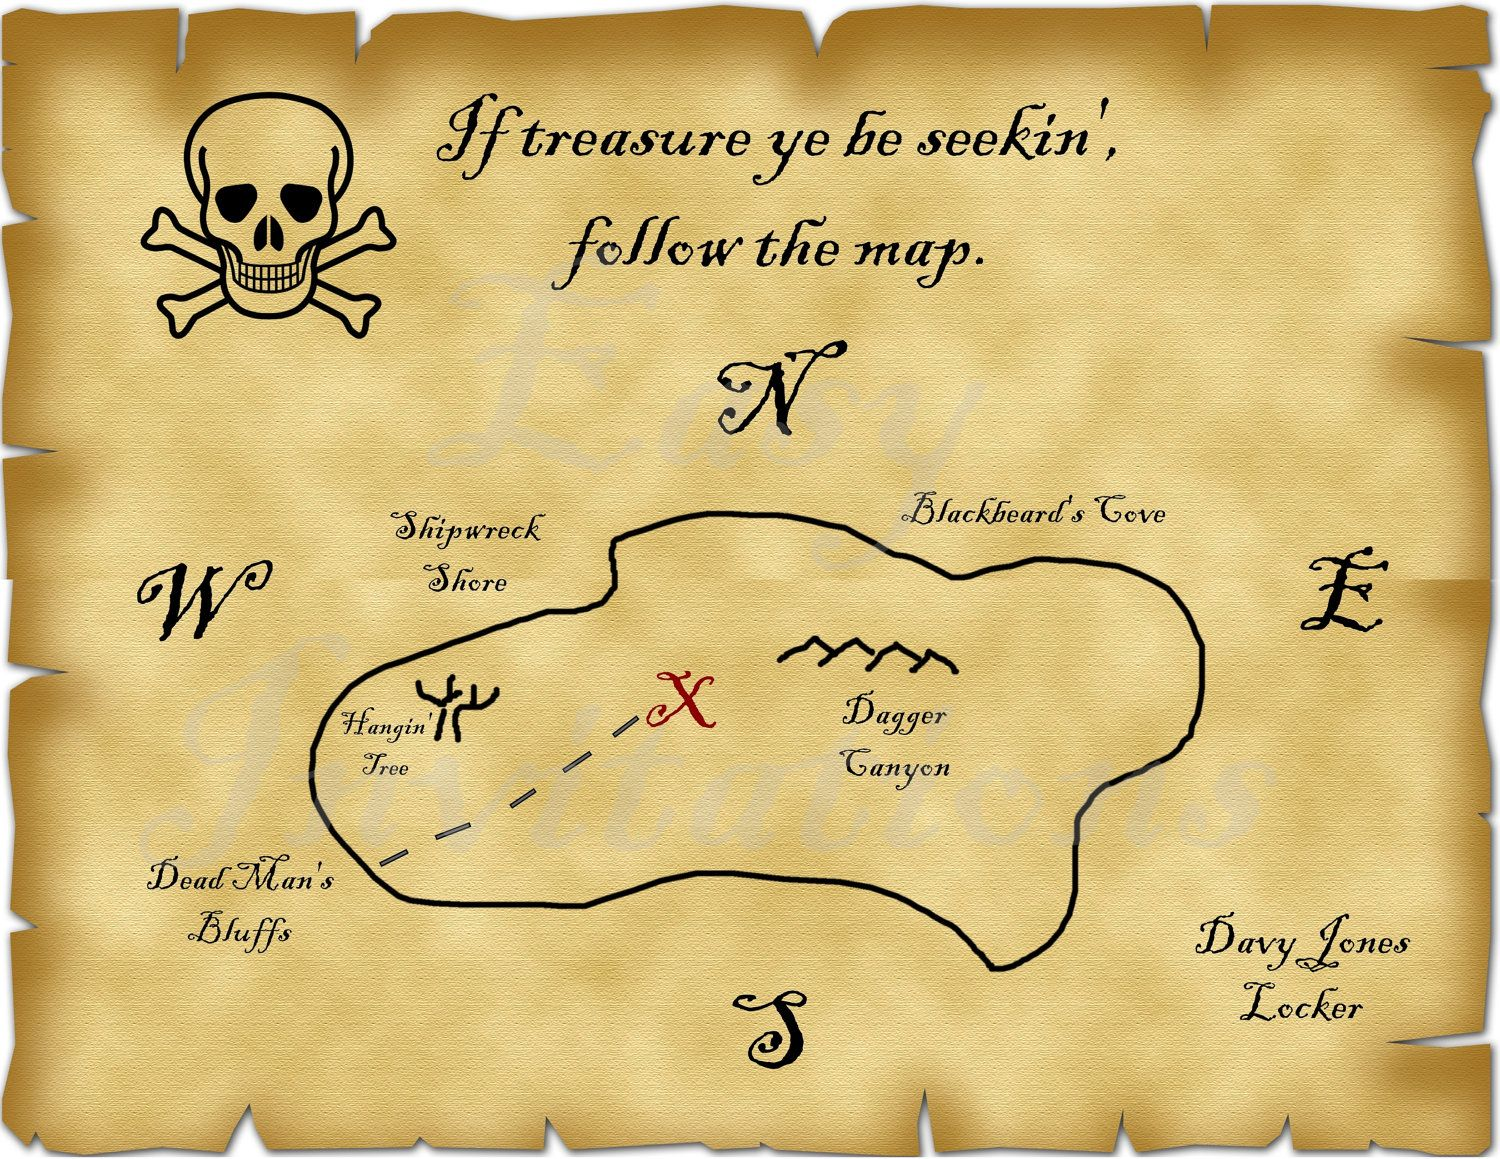 Printable pirate treasure map best photos of template blank printable pirate treasure map best photos of template blank maxwellsz